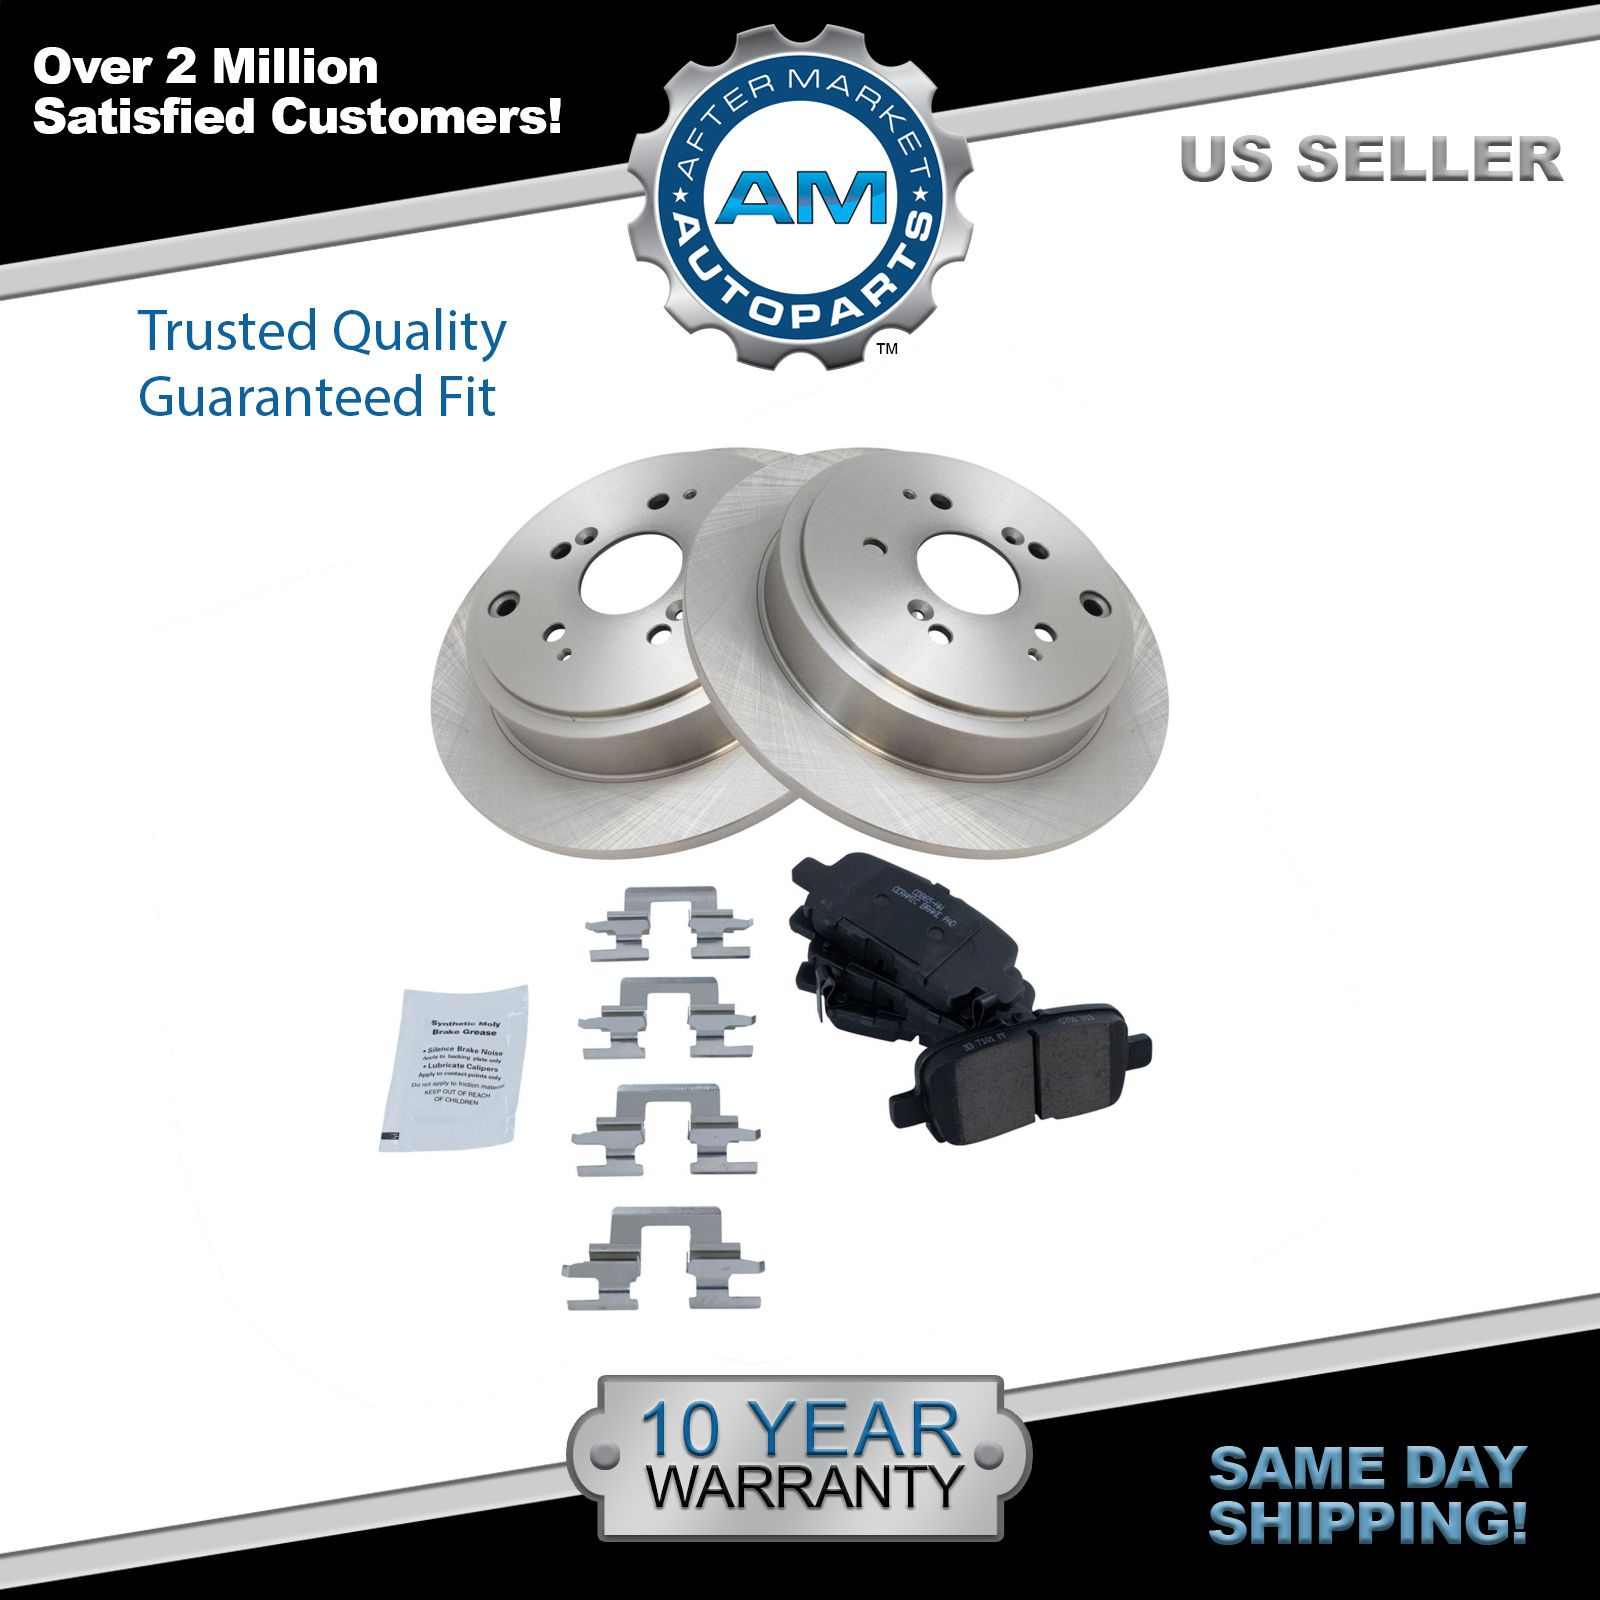 Nakamoto Rear Disc Brake Pad & Rotor Kit Set for Honda Pilot MDX